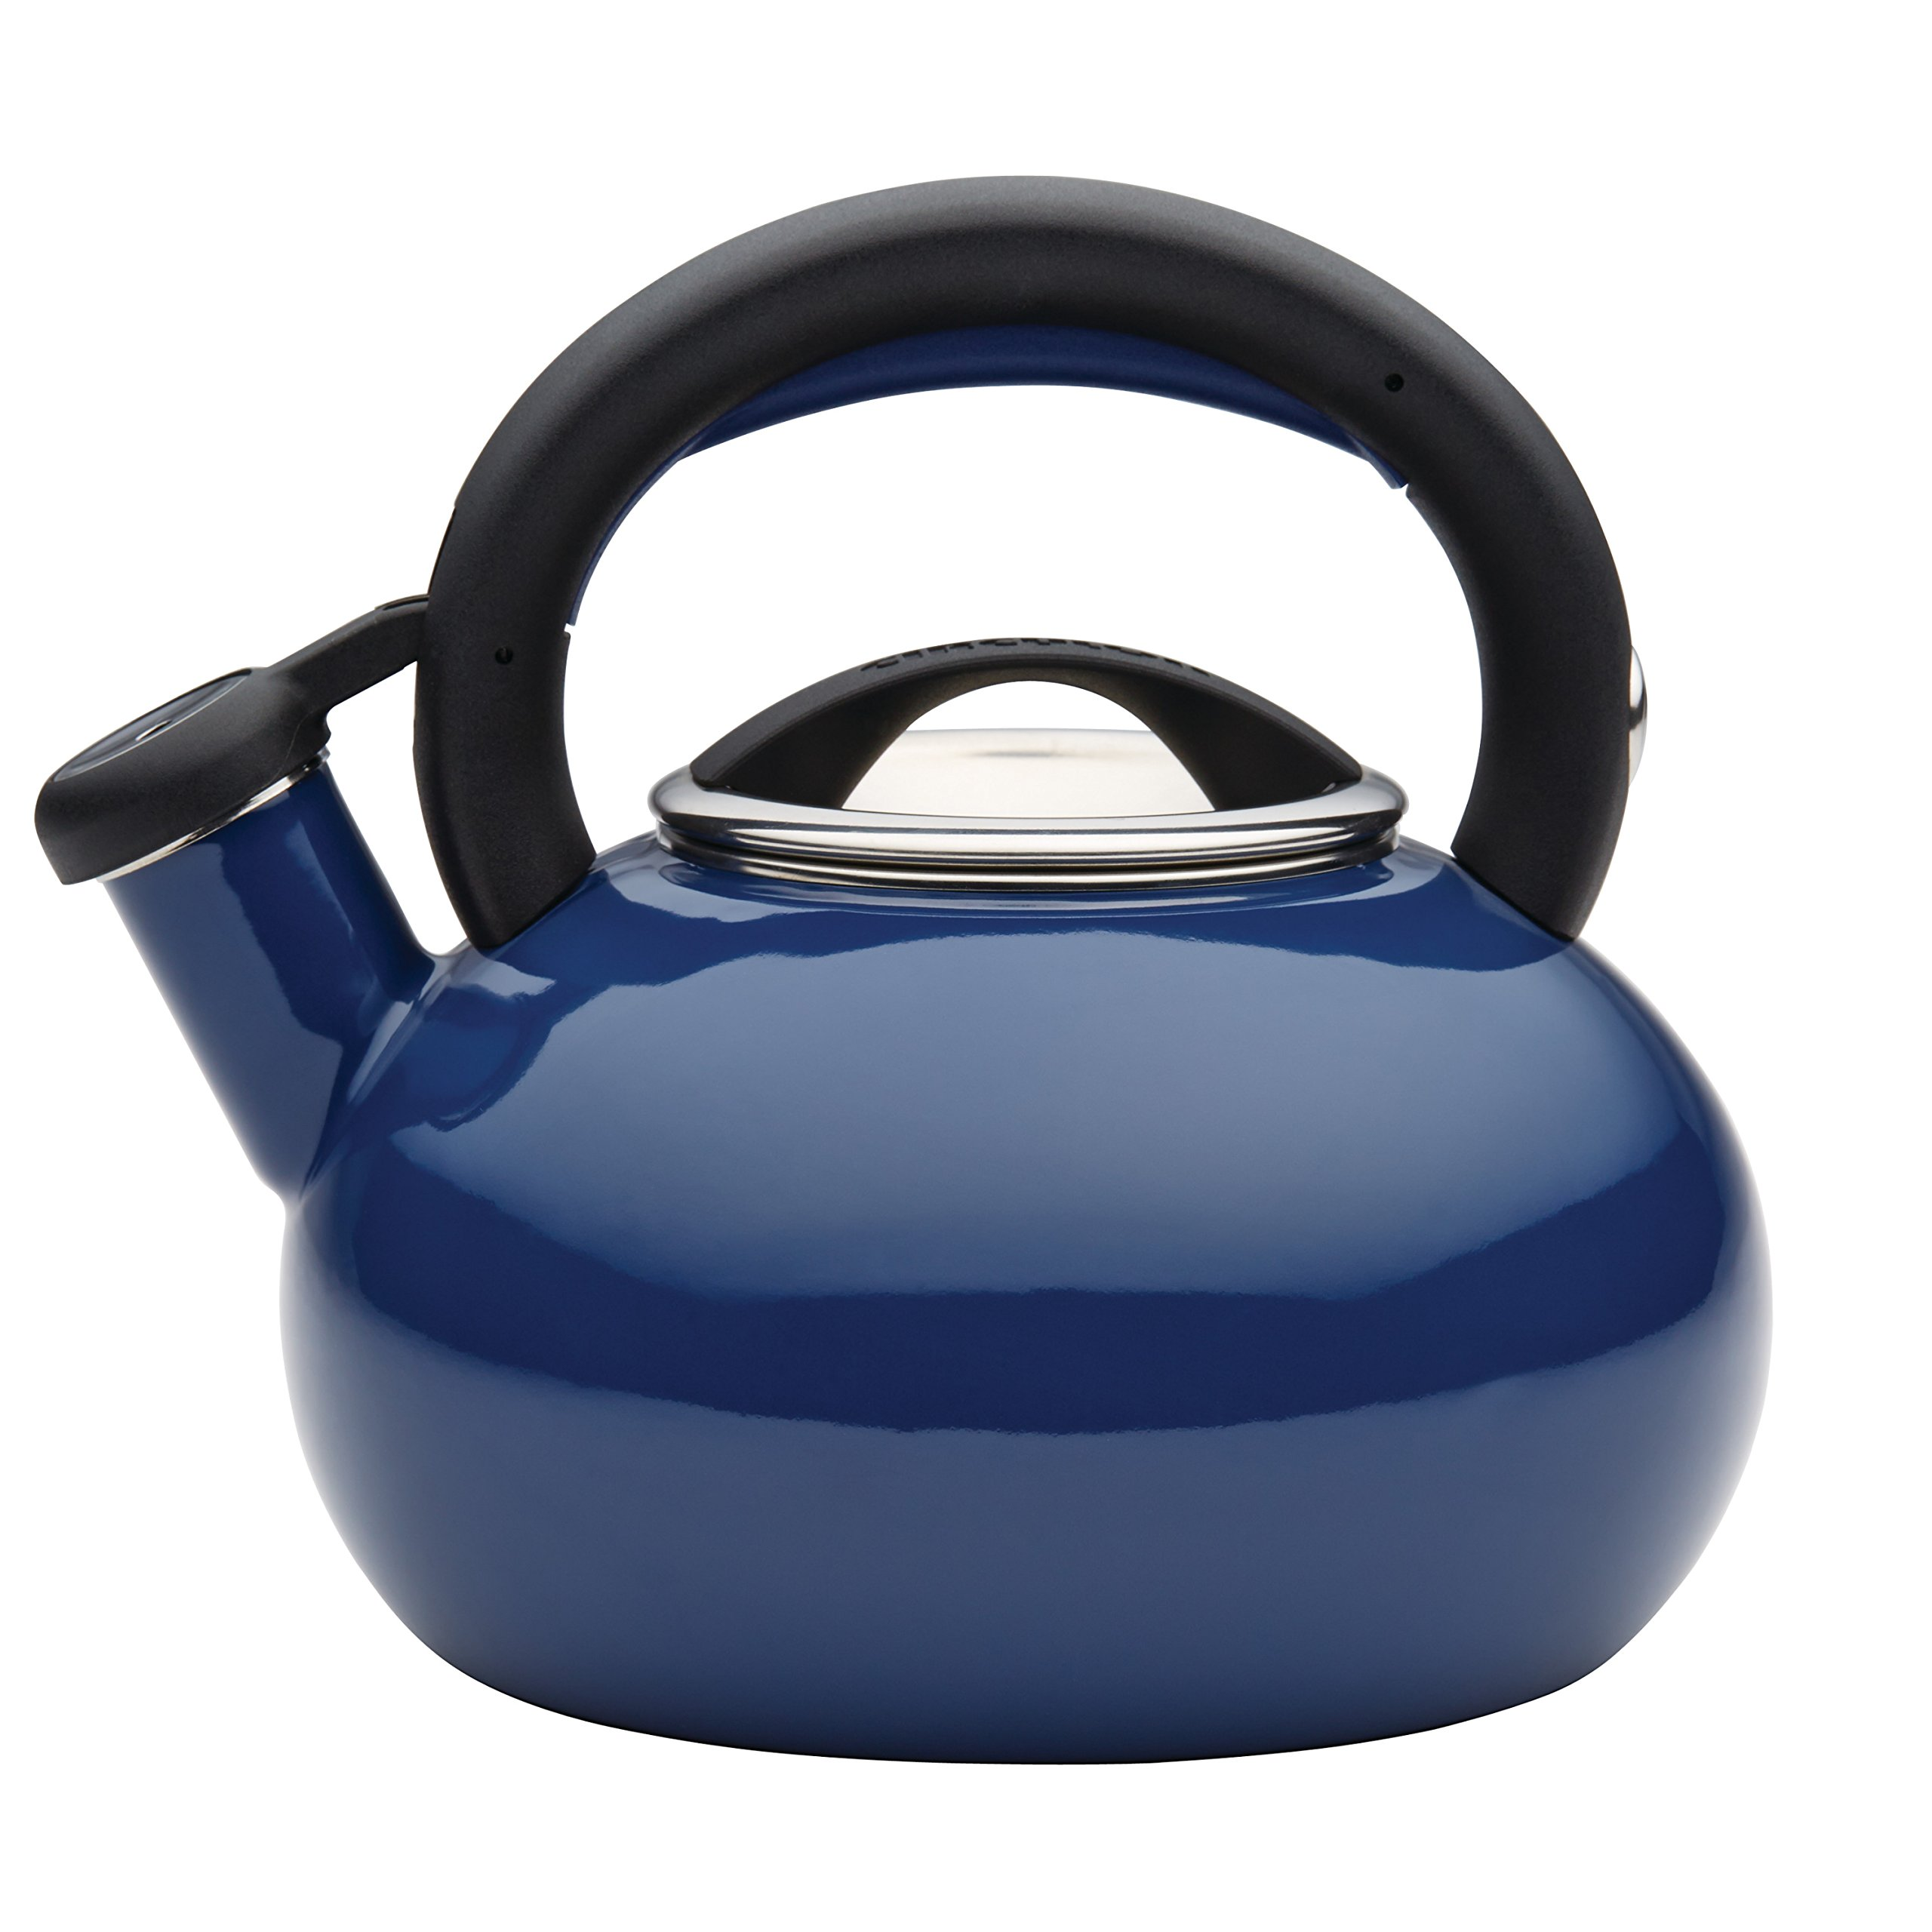 Circulon Teakettles Sunrise Whistling Teakettle, 1 1/2-Quart, Navy Blue